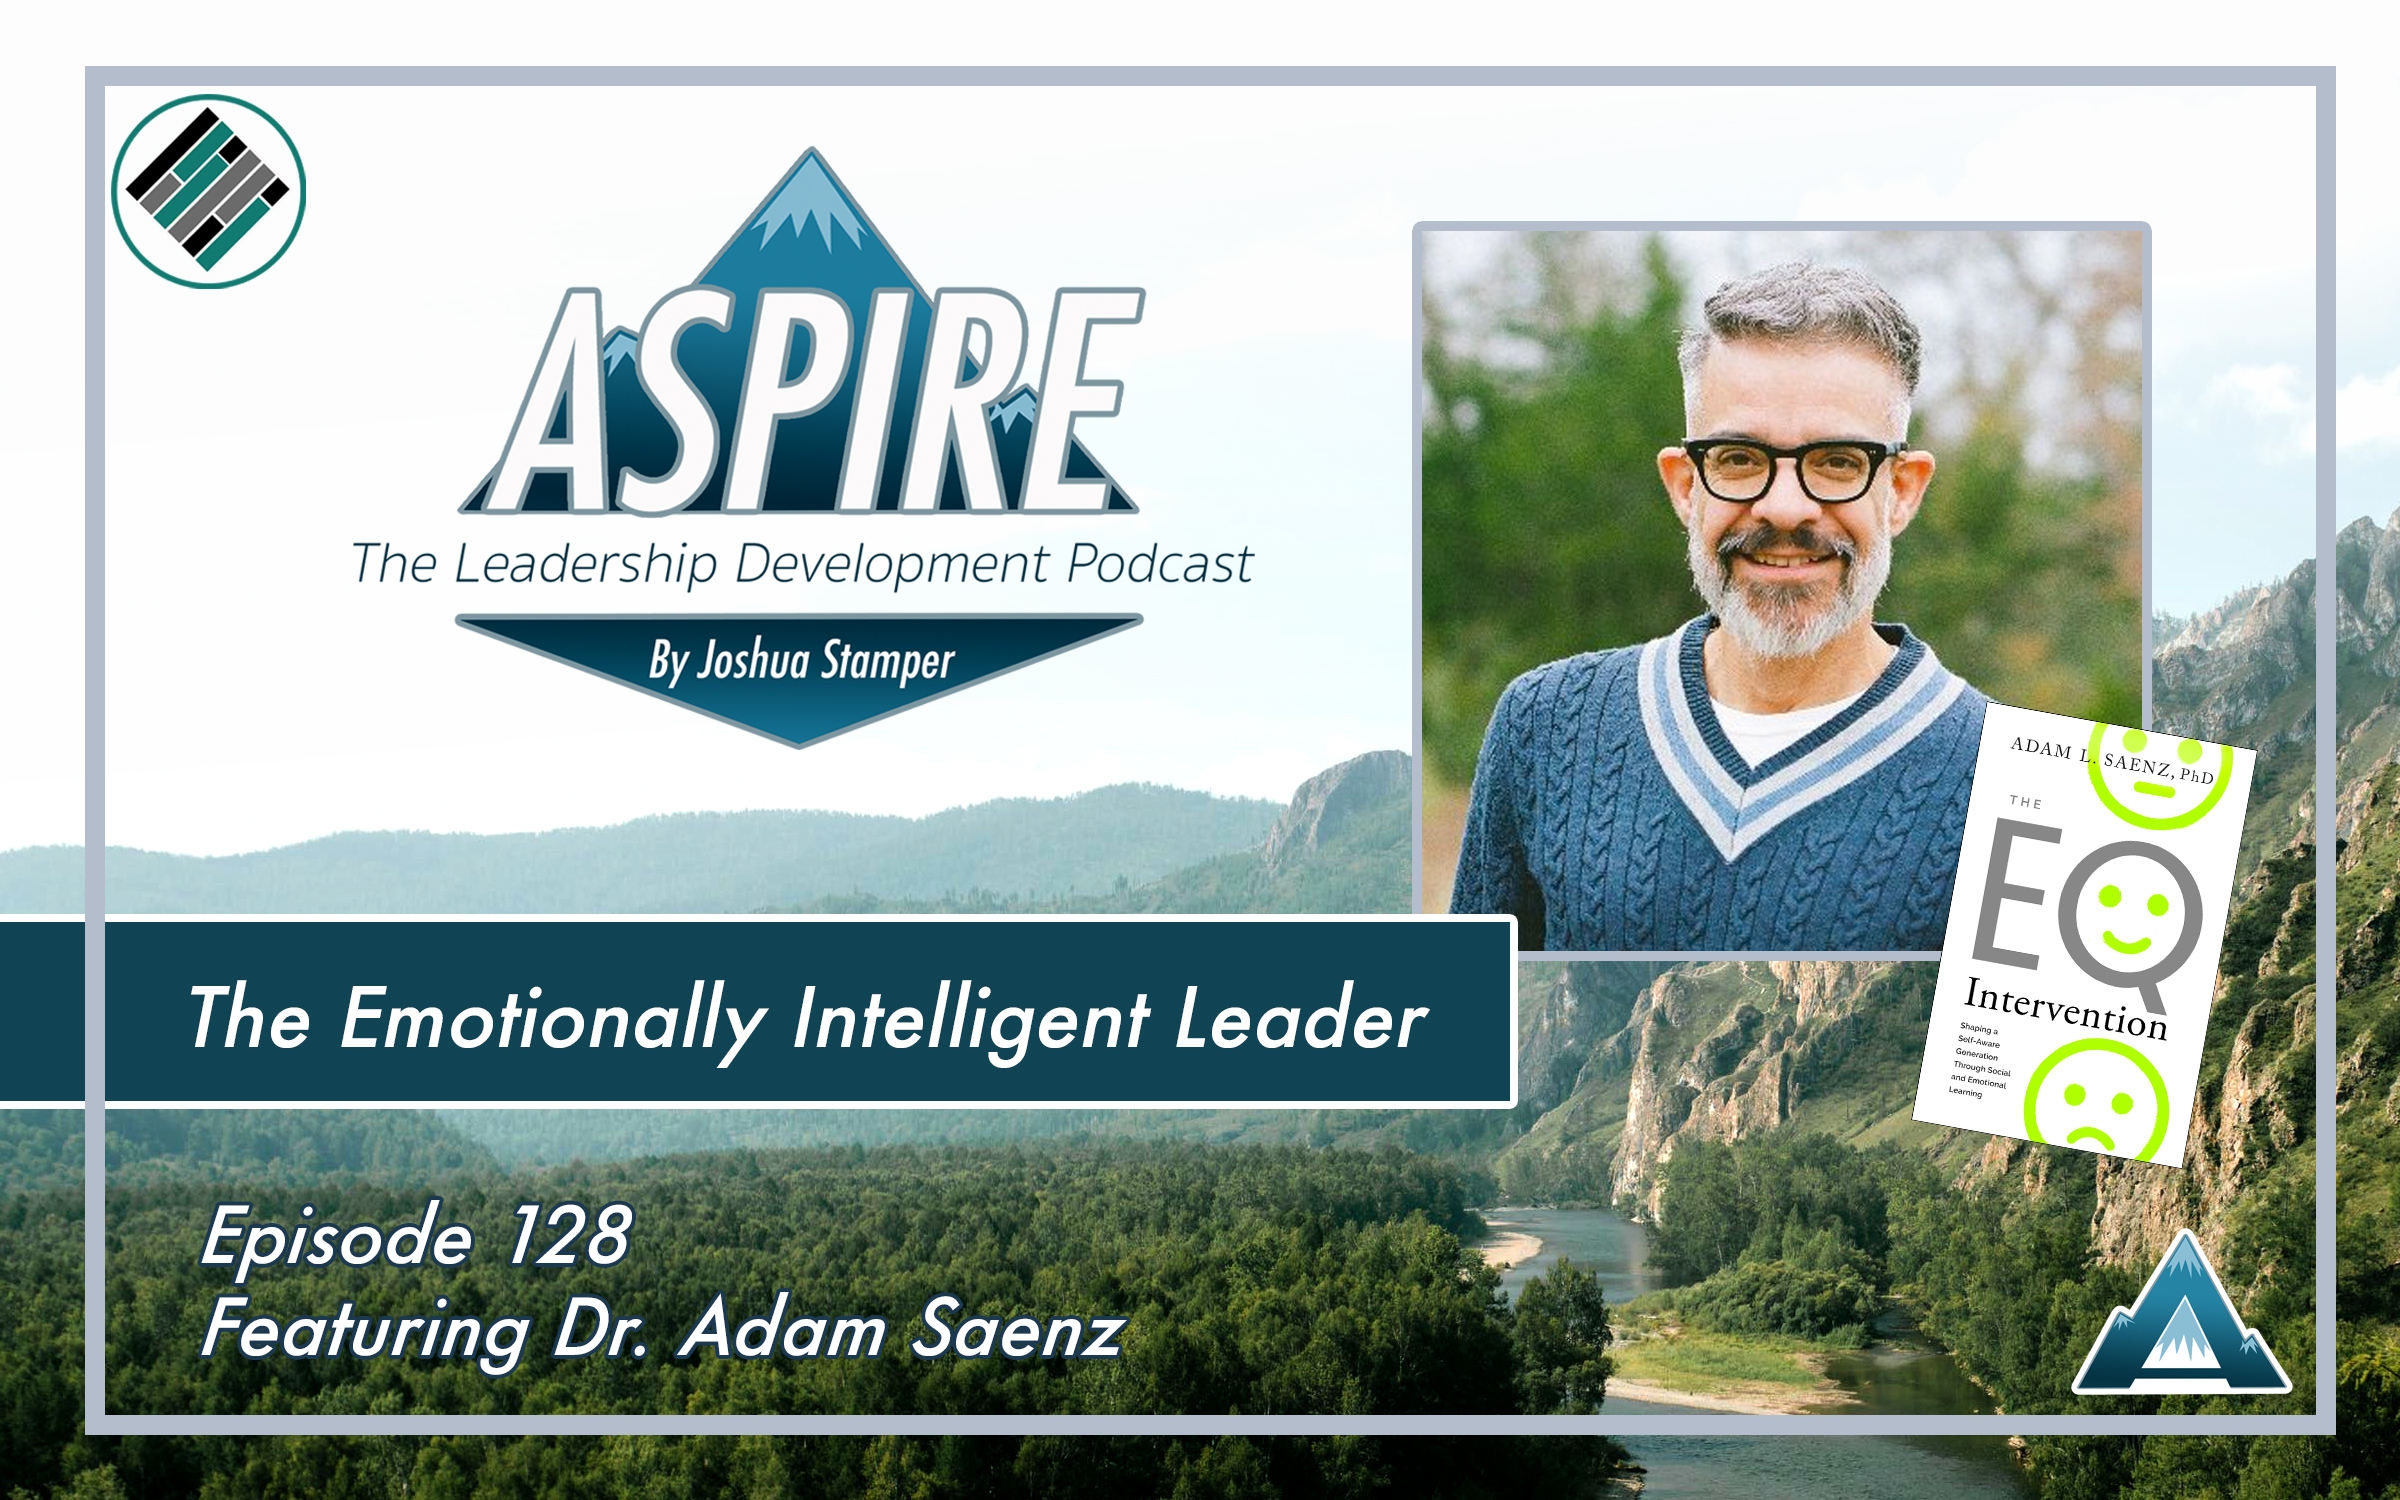 Joshua Stamper, Dr. Adam Saenz, Aspire: The Leadership Development Podcast, The EQ Intervention, #AspireLead